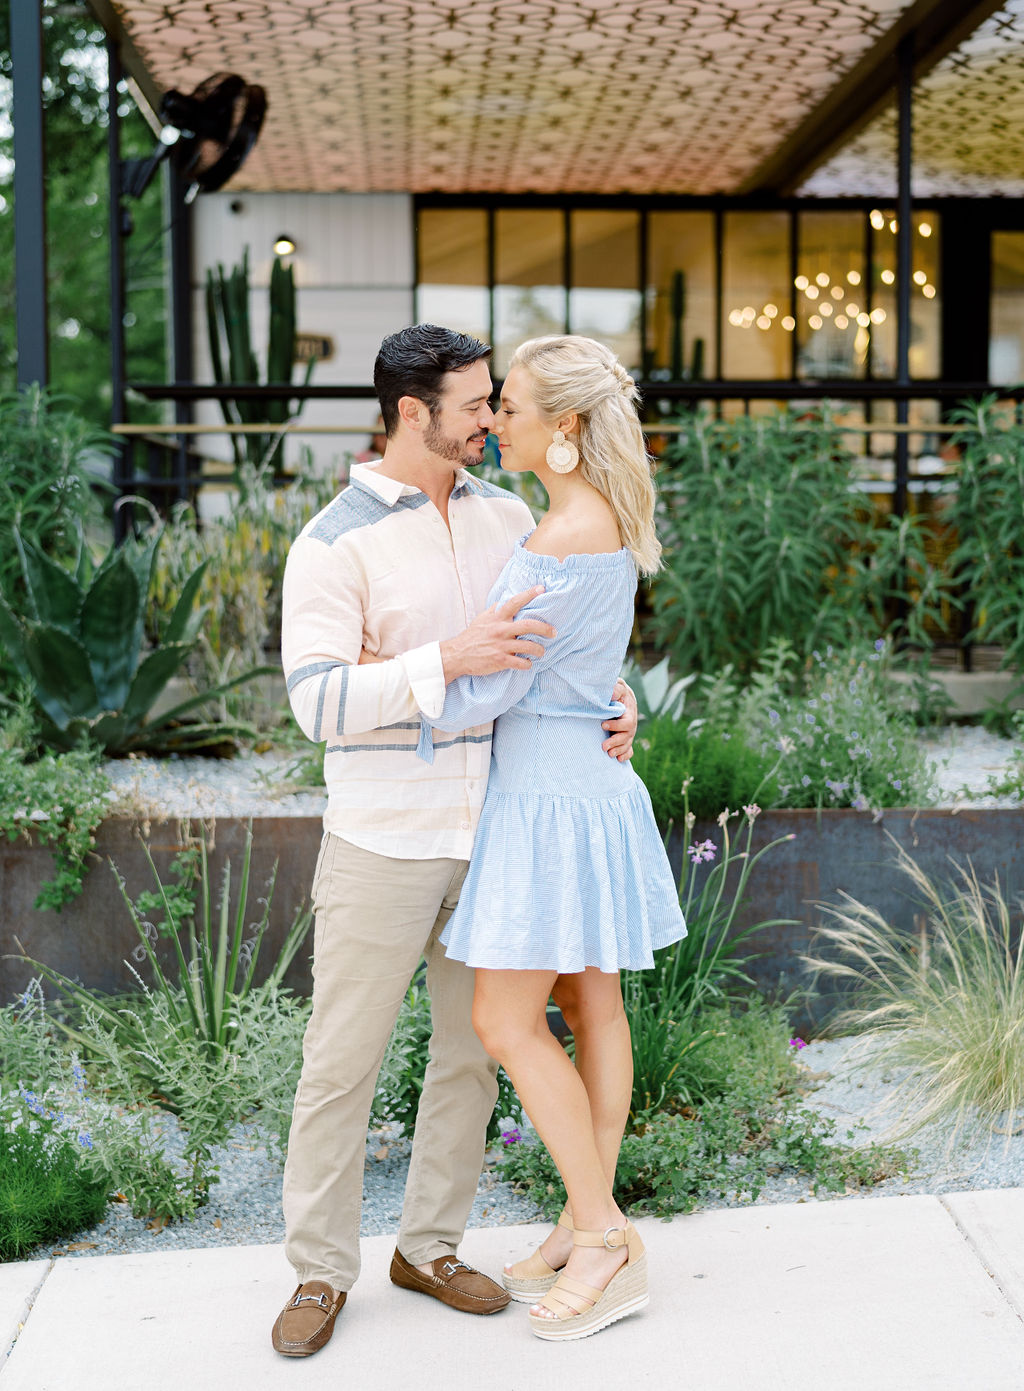 Austin-Elopement-Intimate-Wedding-Photographer-South-Congress-Hotel-Engagement-Session-23.jpg